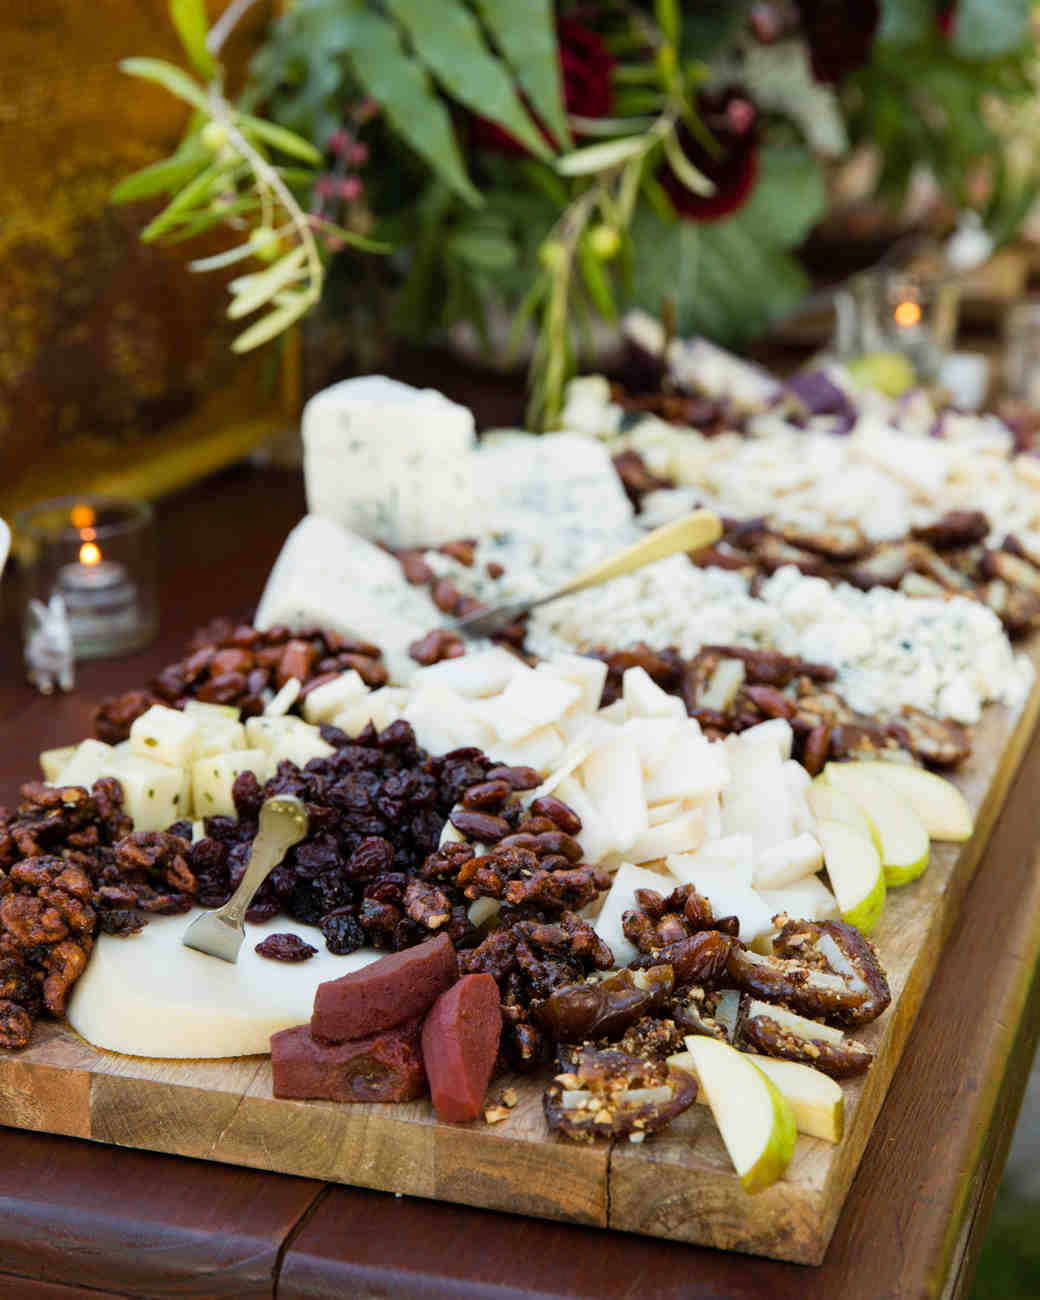 Cheese Board Ideas Pictures: 6 Steps For Curating A Delicious Display Of Cheese And